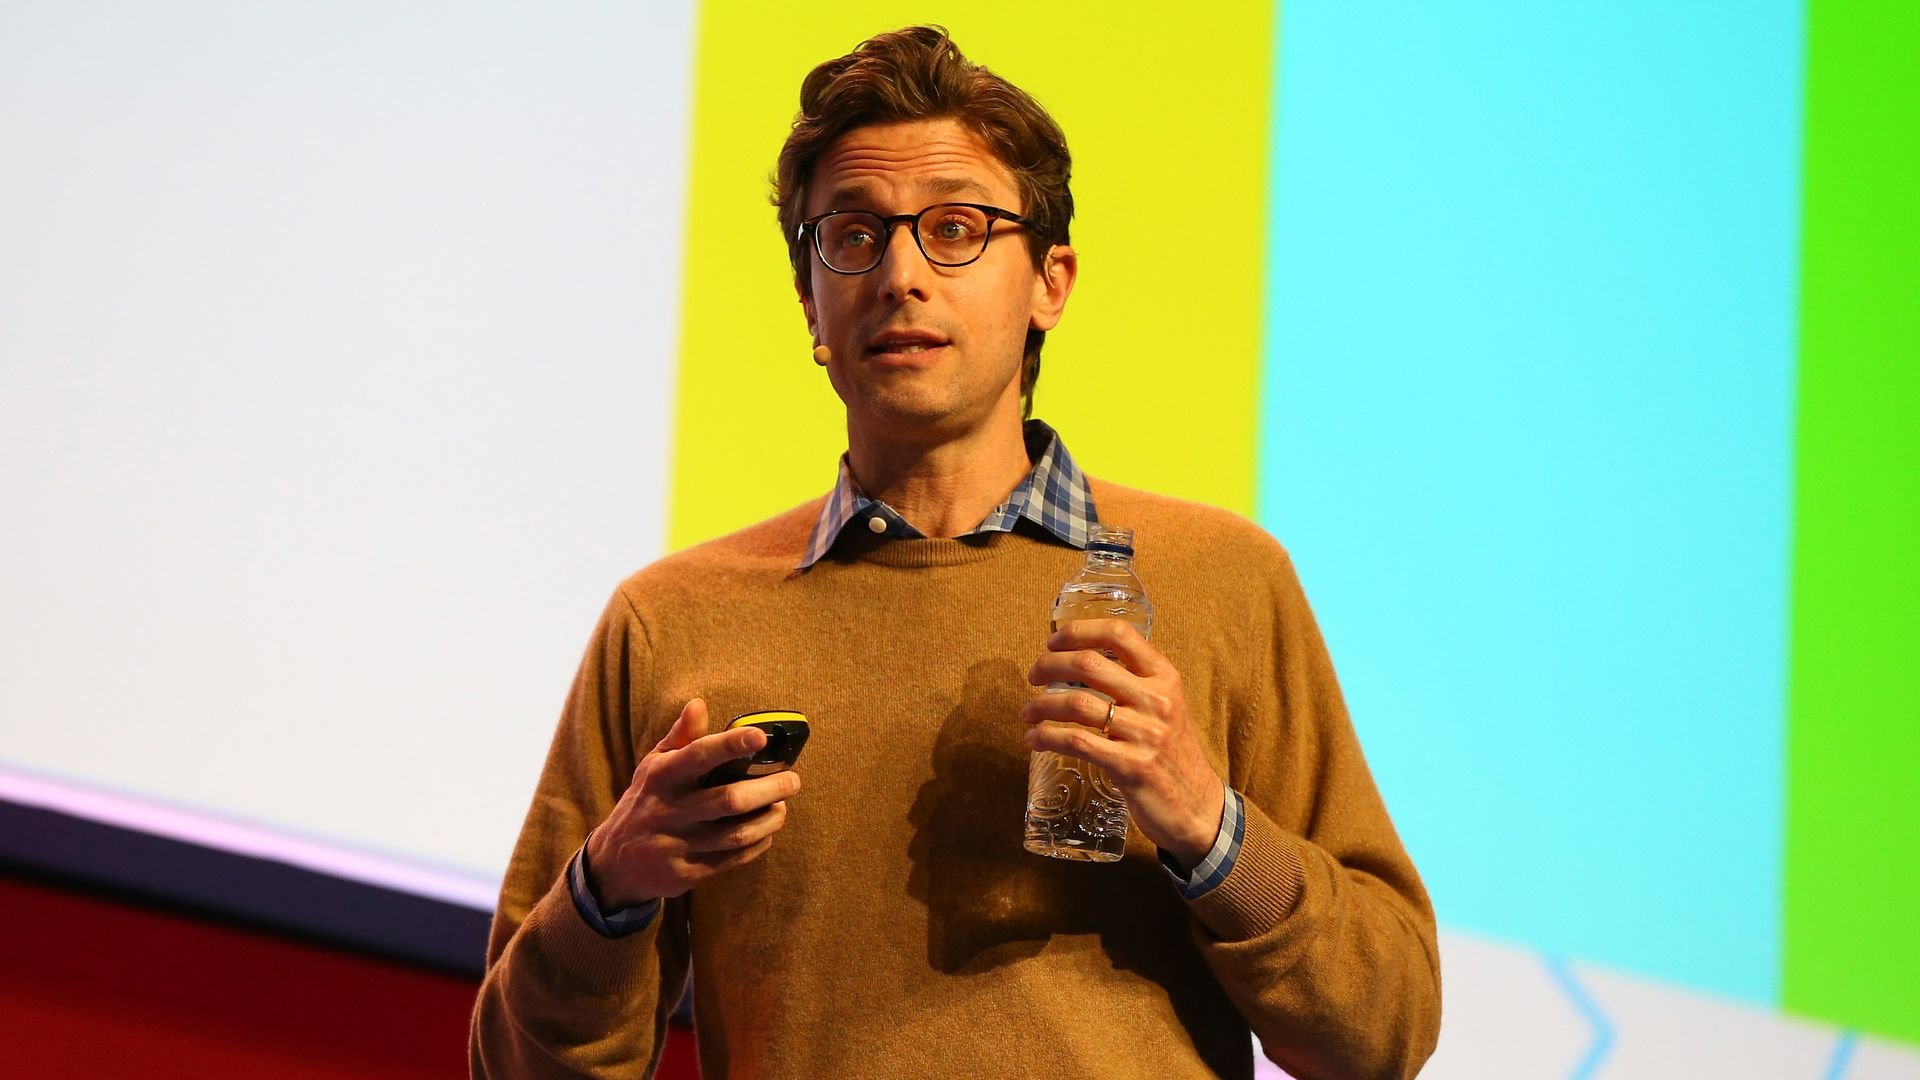 BuzzFeed founder and CEO Jonah Peretti in 2016.